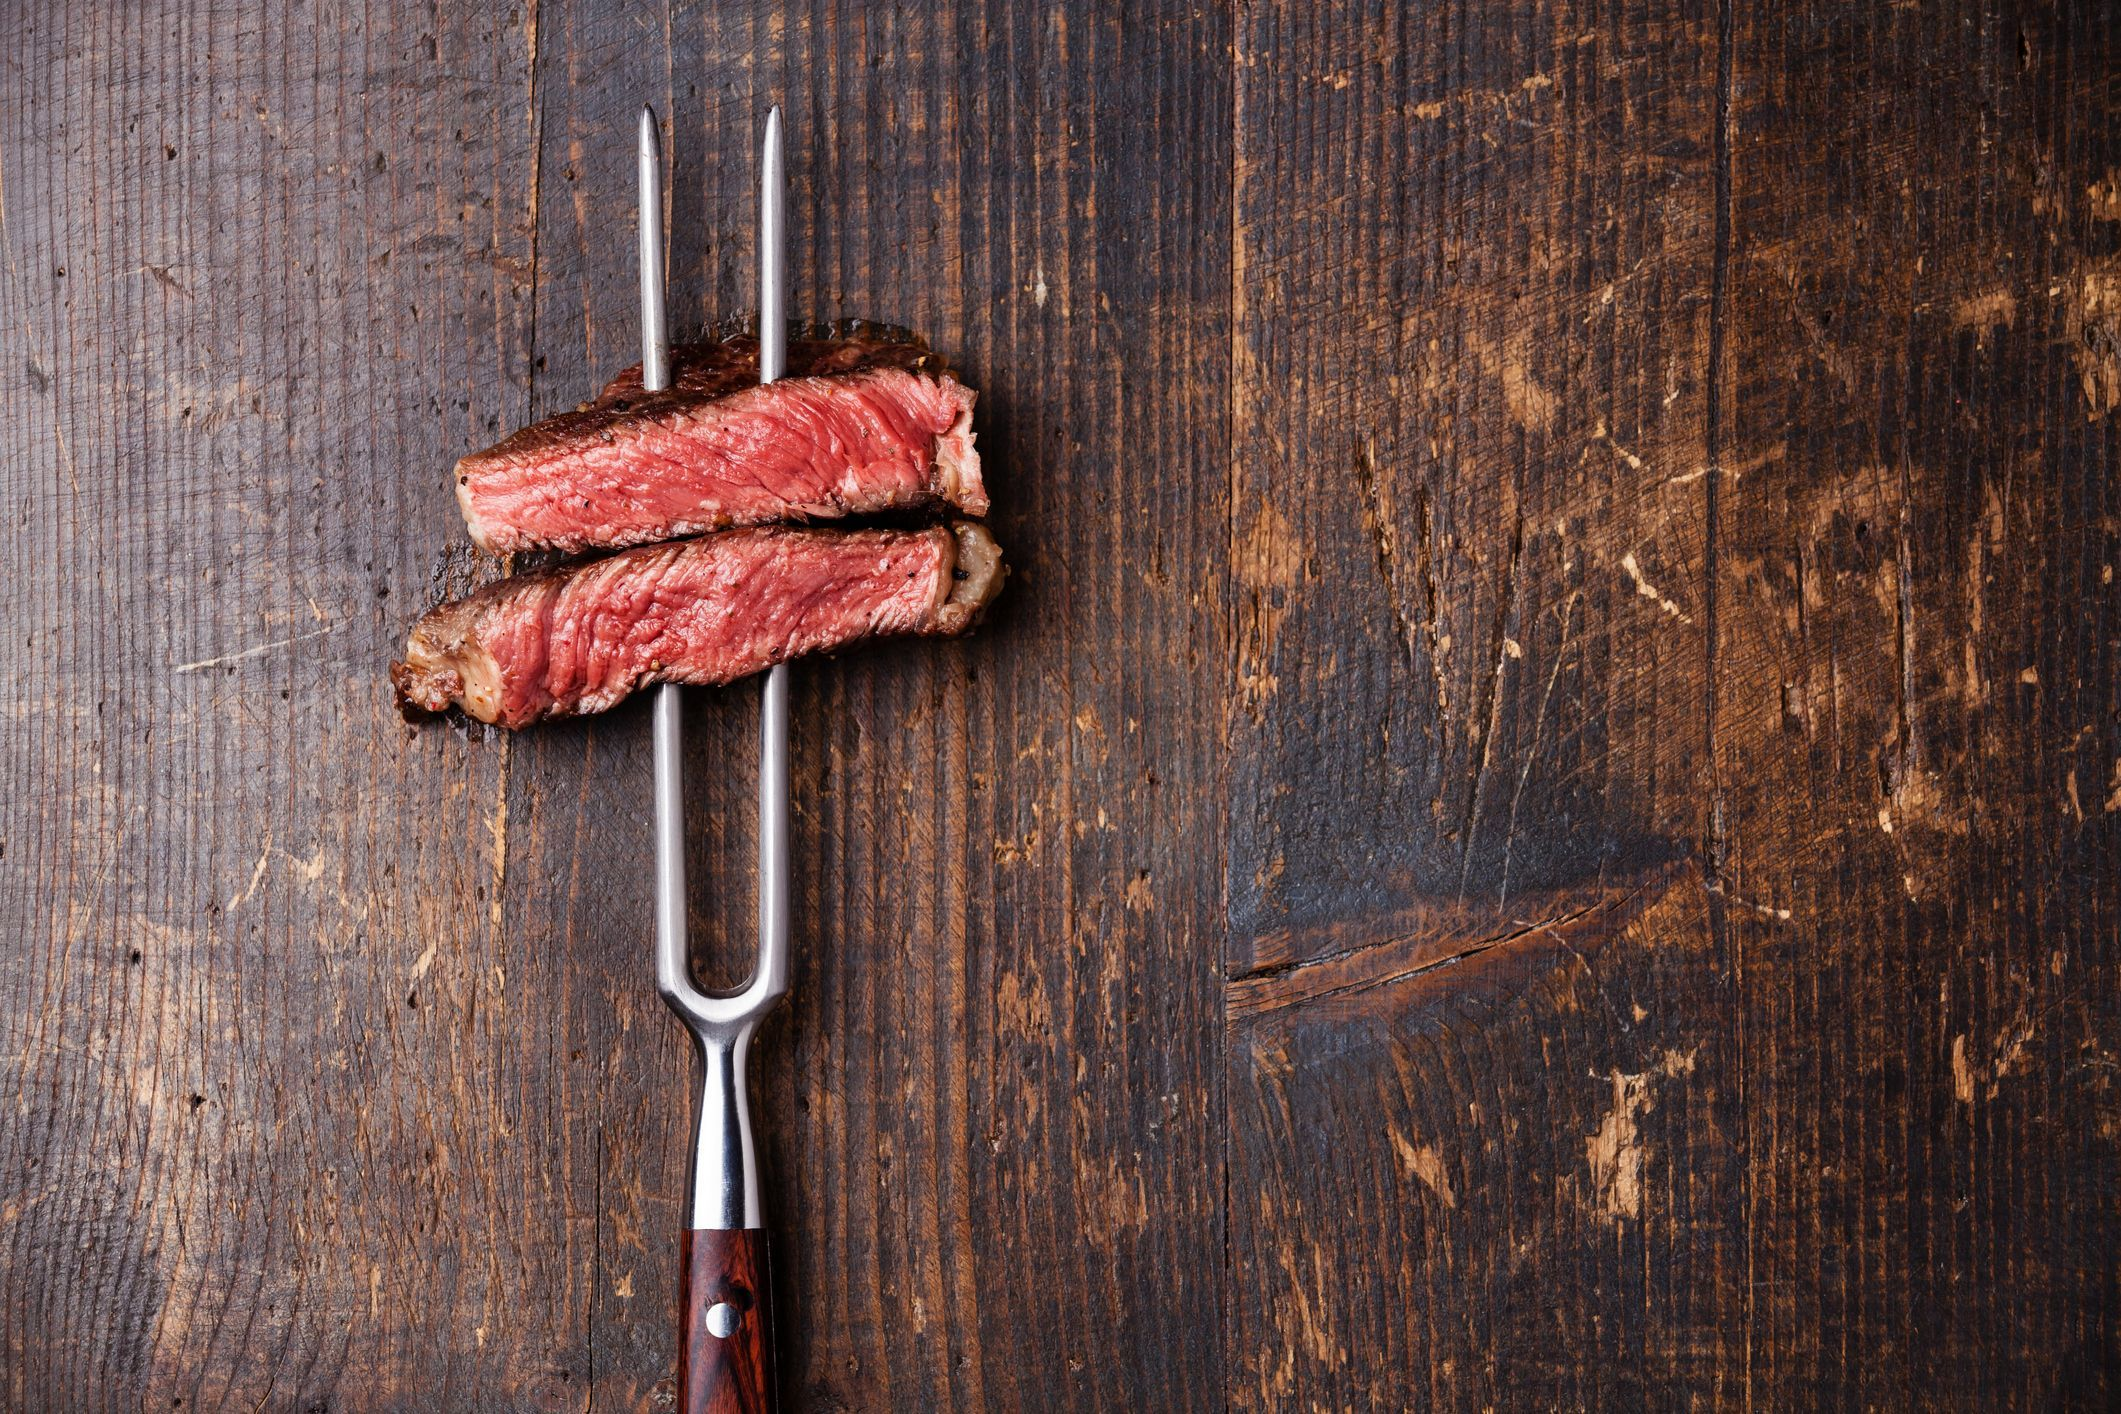 What Critics Get Wrong About the Red Meat Debate